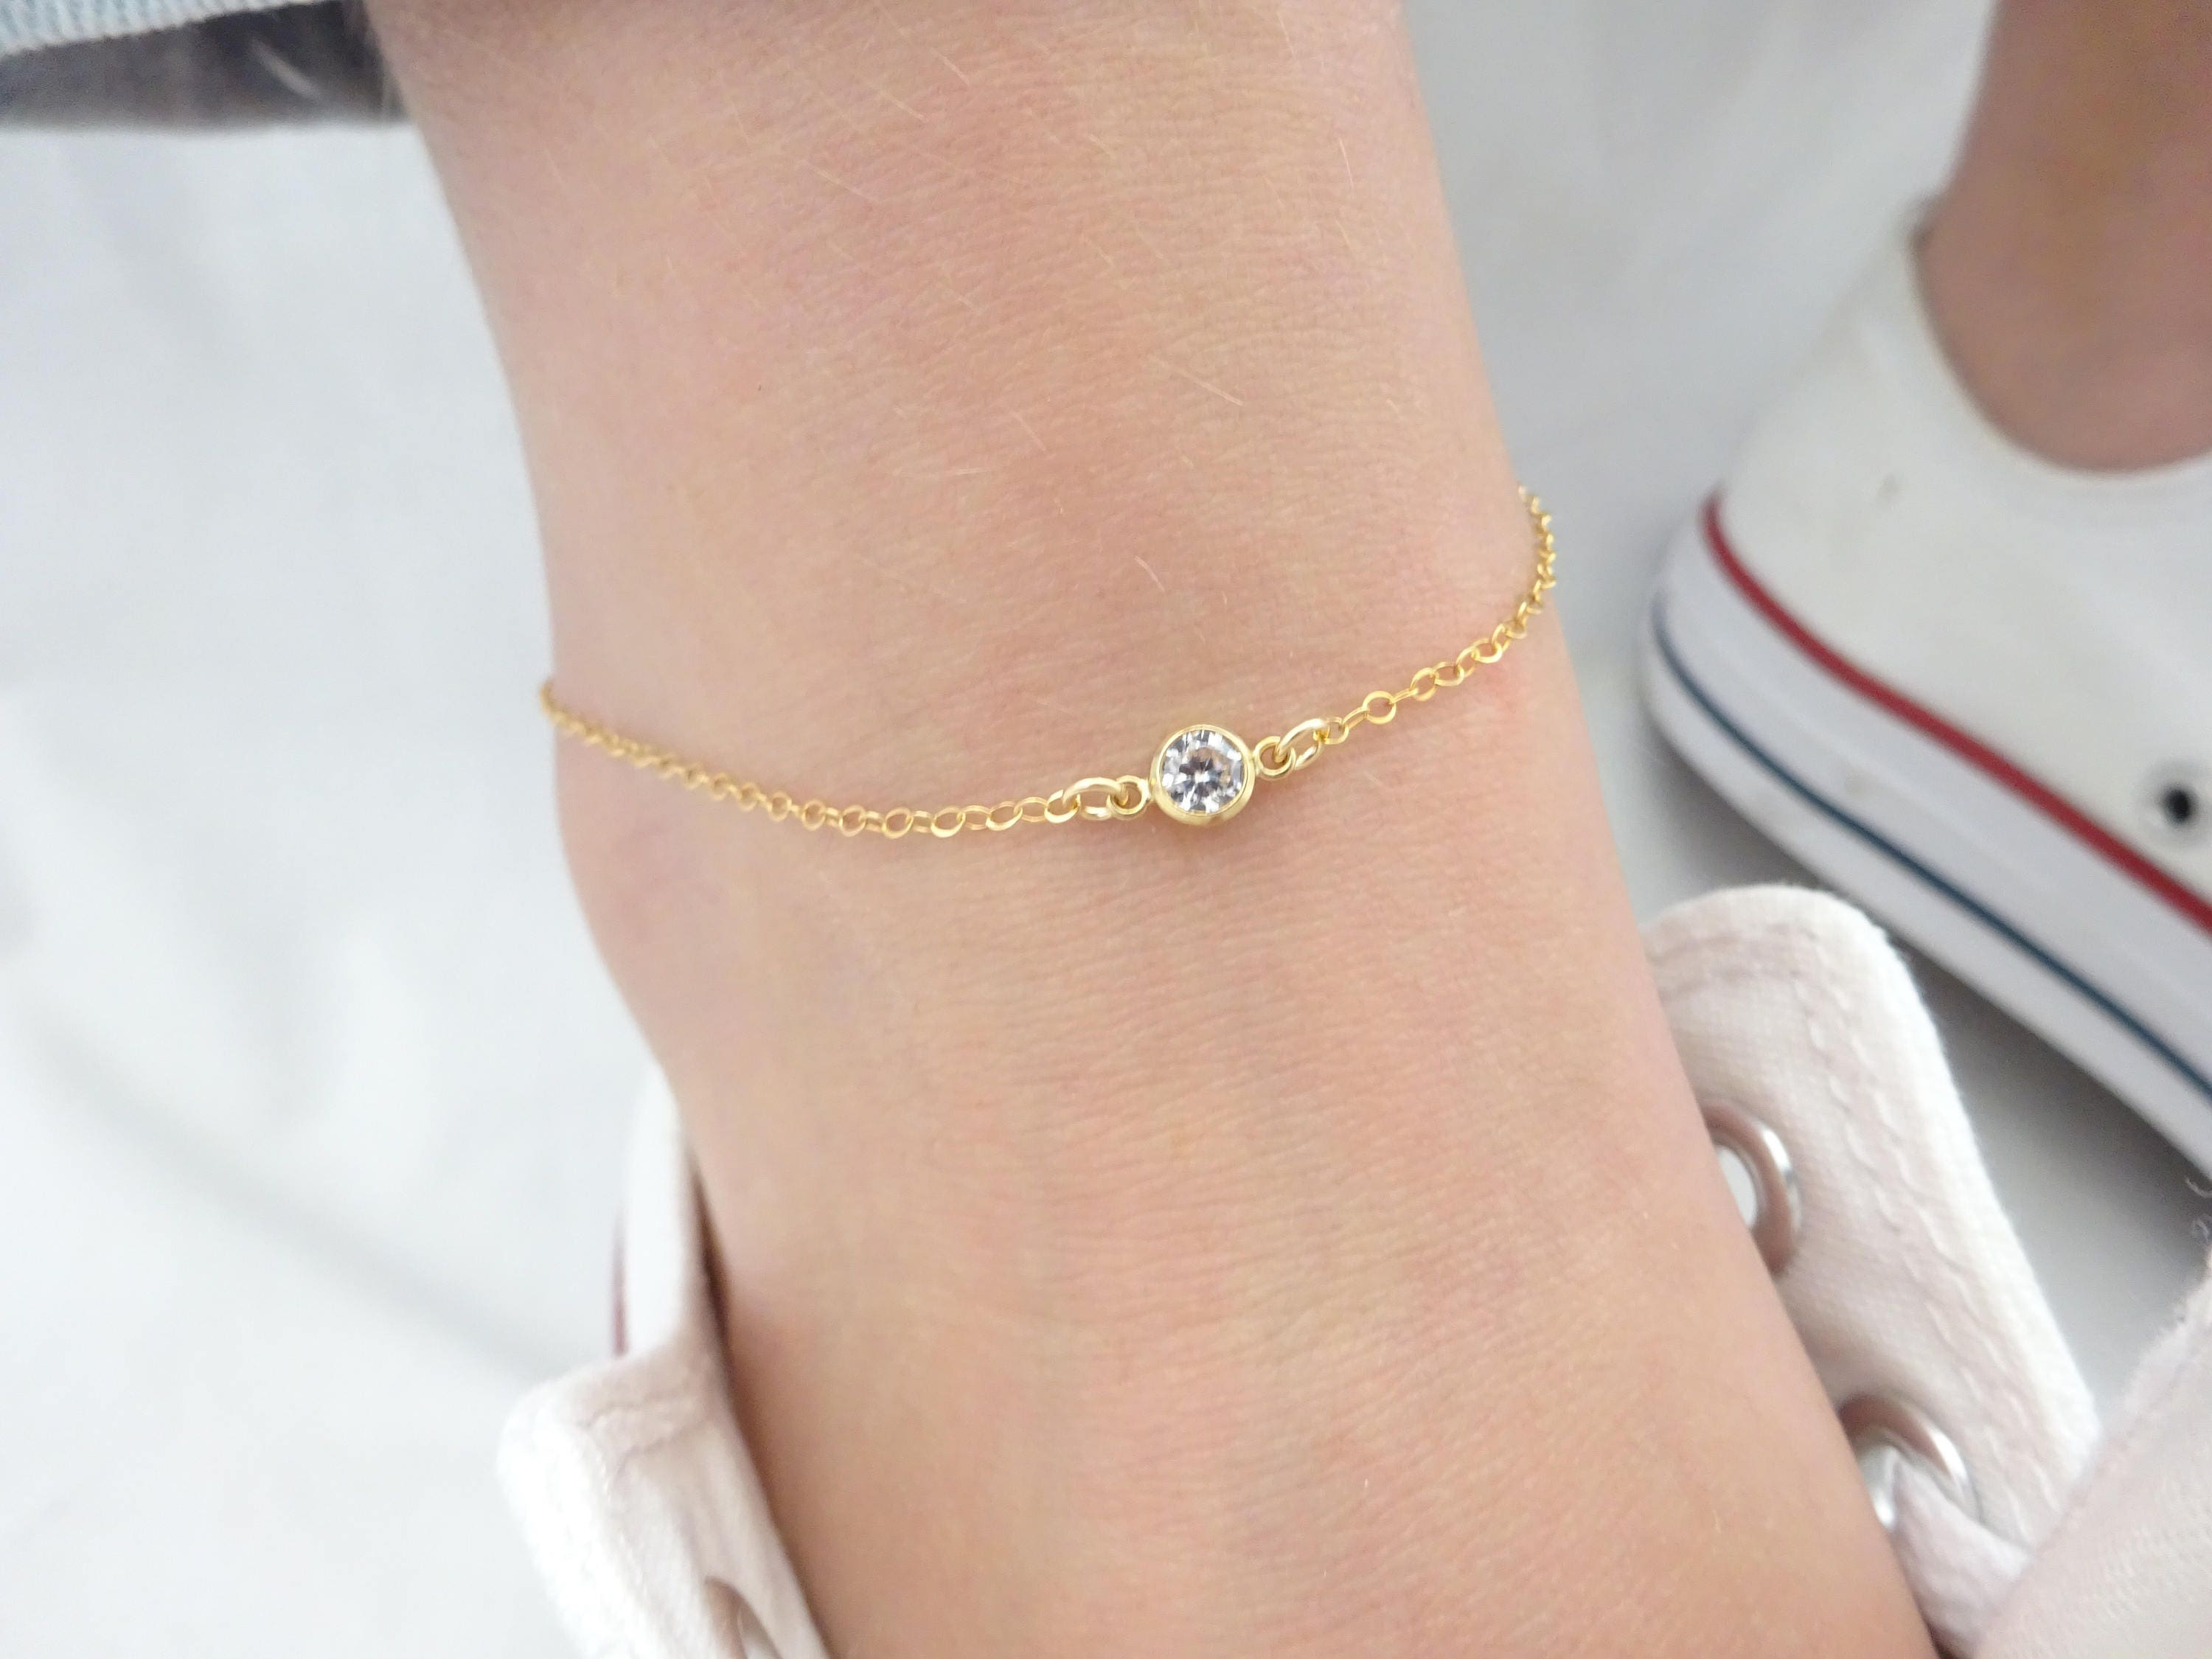 ankle gold zirconia anklet jewelry anklets dhgate fashion aaa steel product stainless casual china com rose discount bracelet cubic woman women sporty plated from